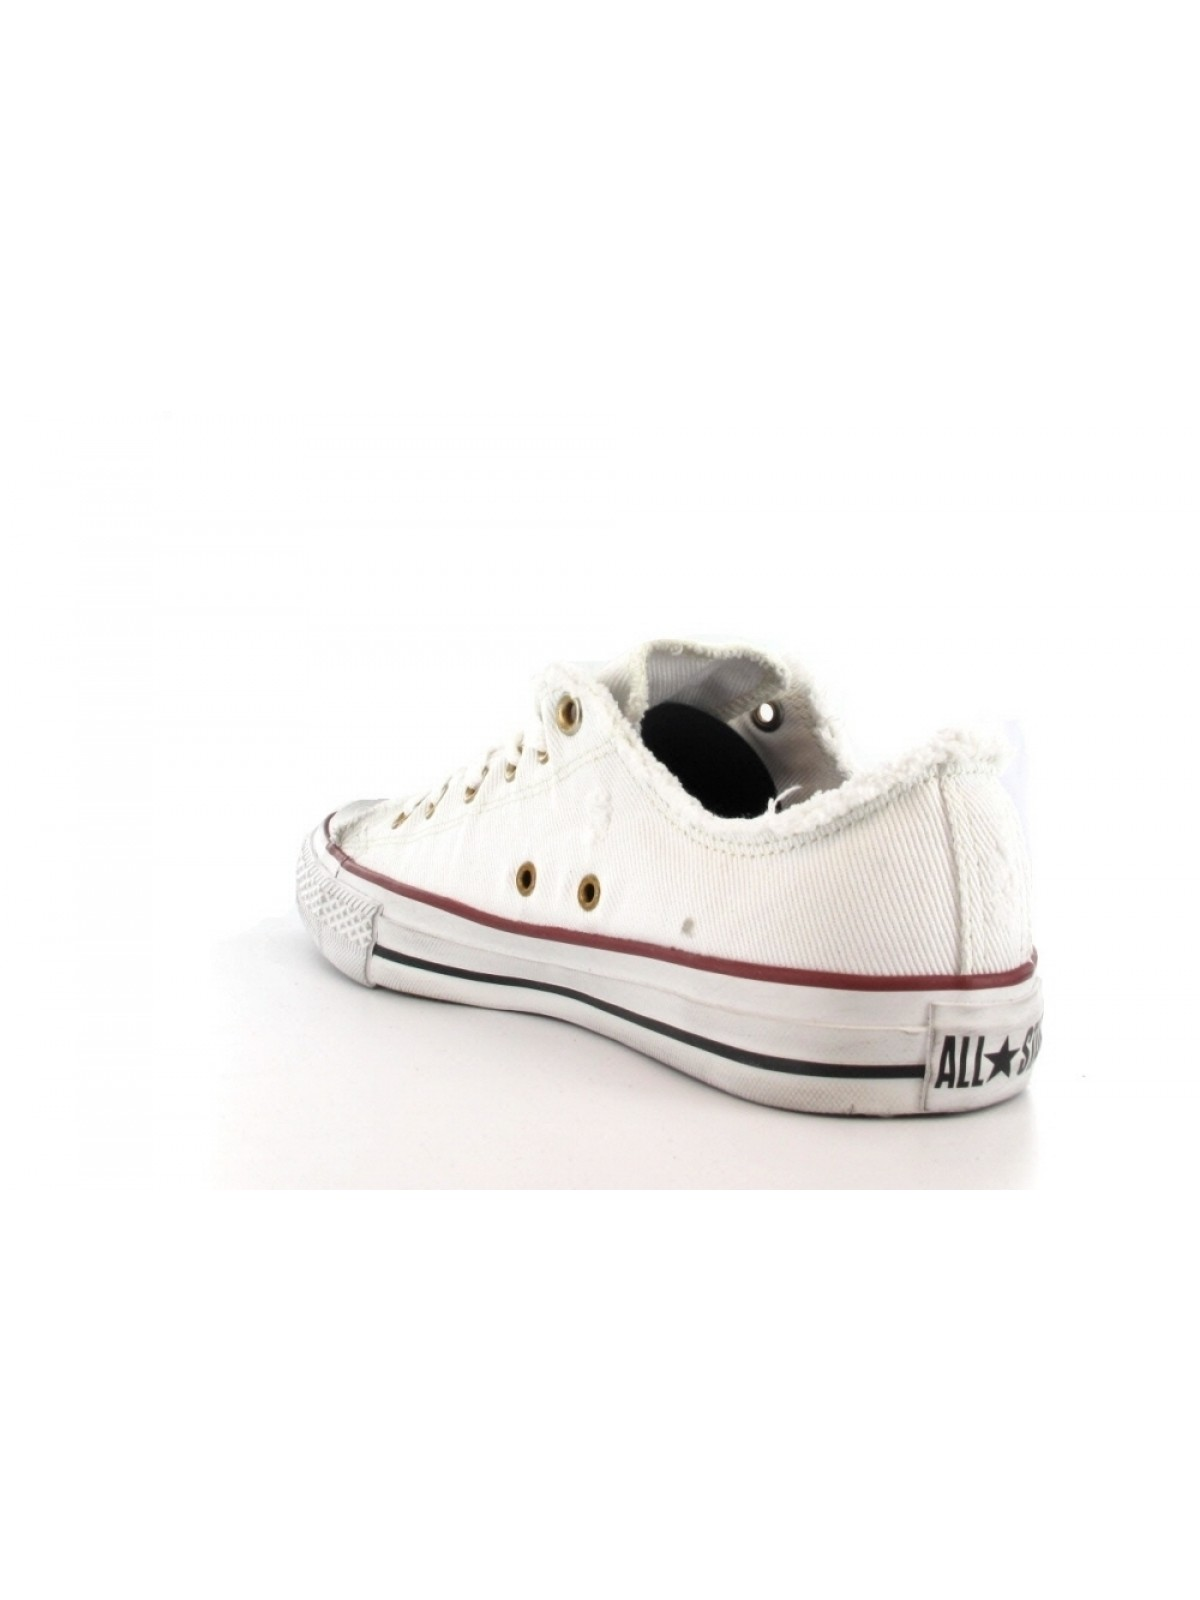 Converse Chuck Taylor all star toile basse jean blanc